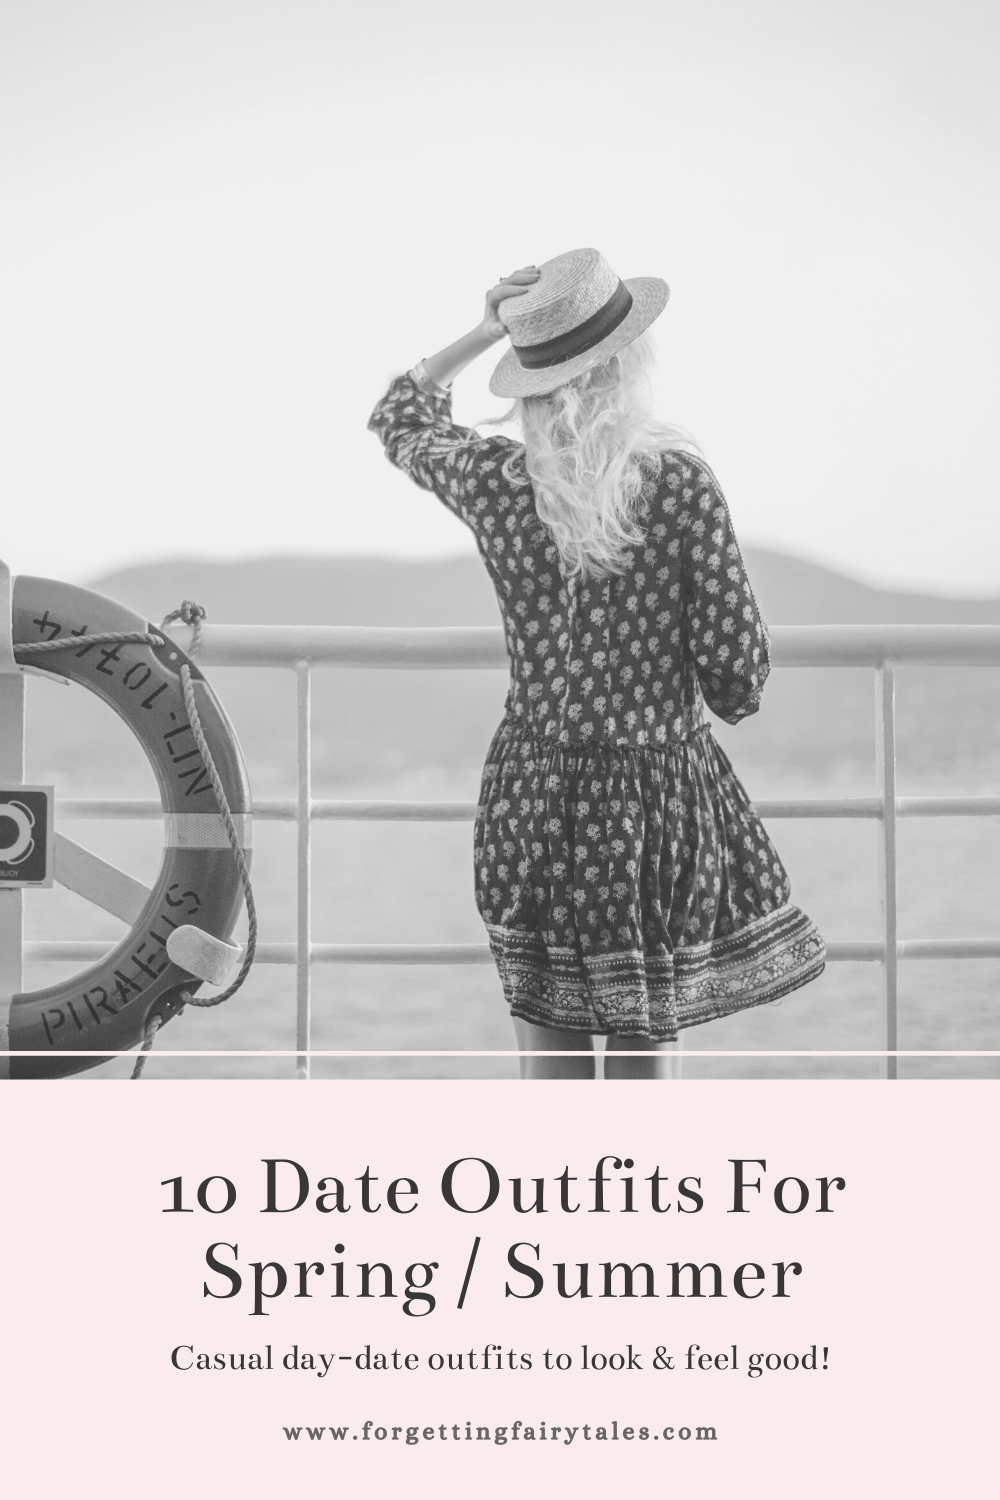 Casual Date Outfits for Spring / Summer